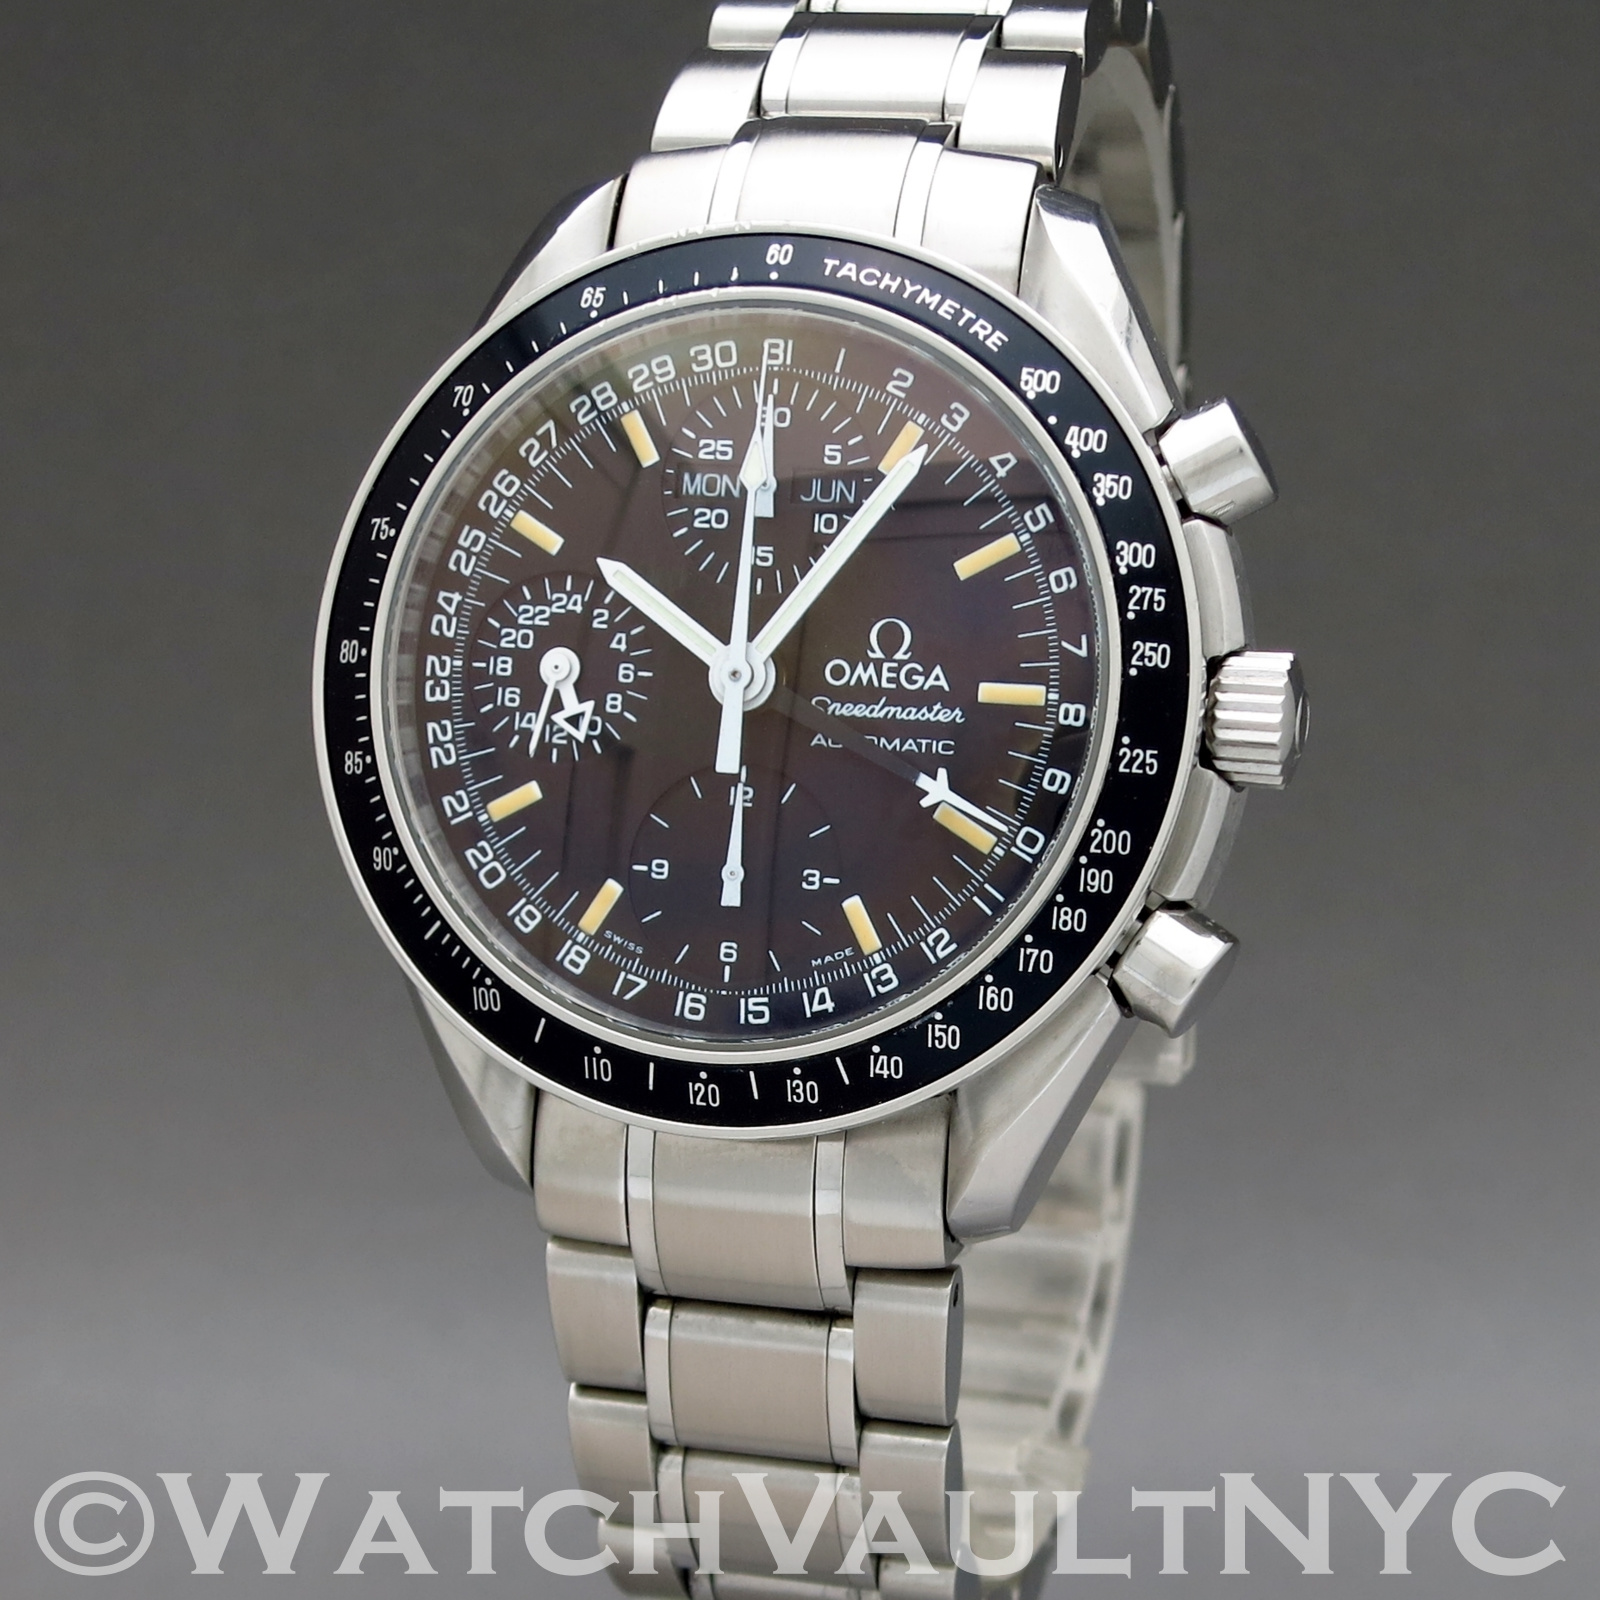 1a8724723 Omega Speedmaster Day Date Chronograph Mark 40 3520.50 39mm Auto stainless  steel Case Black Dial Unisex